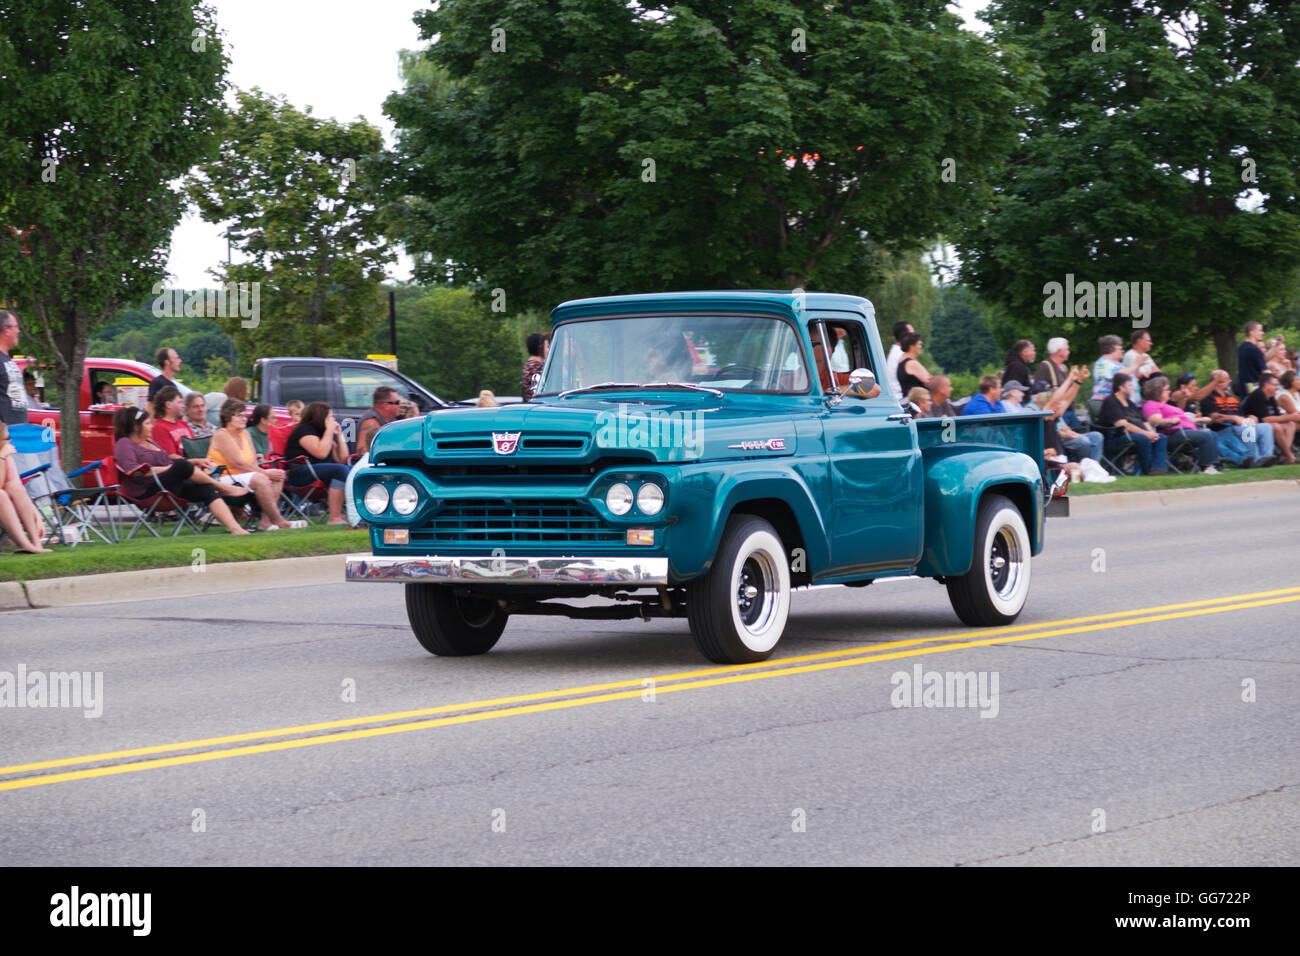 1955 Ford F100 Stock Photos Images Alamy Pick Up For Sale Truck Participates In The 2016 Annual Cruz Antique And Vintage